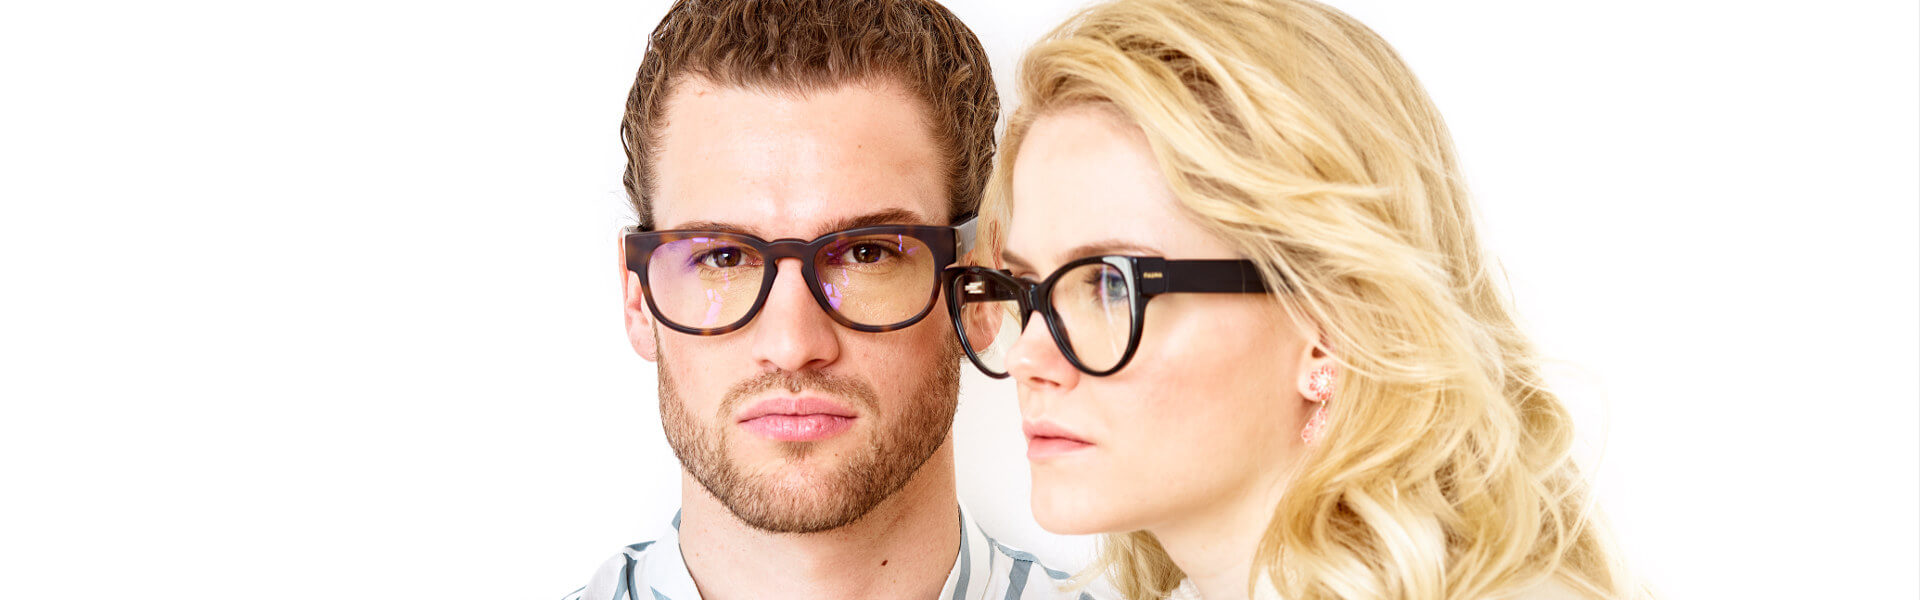 Get Fauna audio eyewear in retail stores